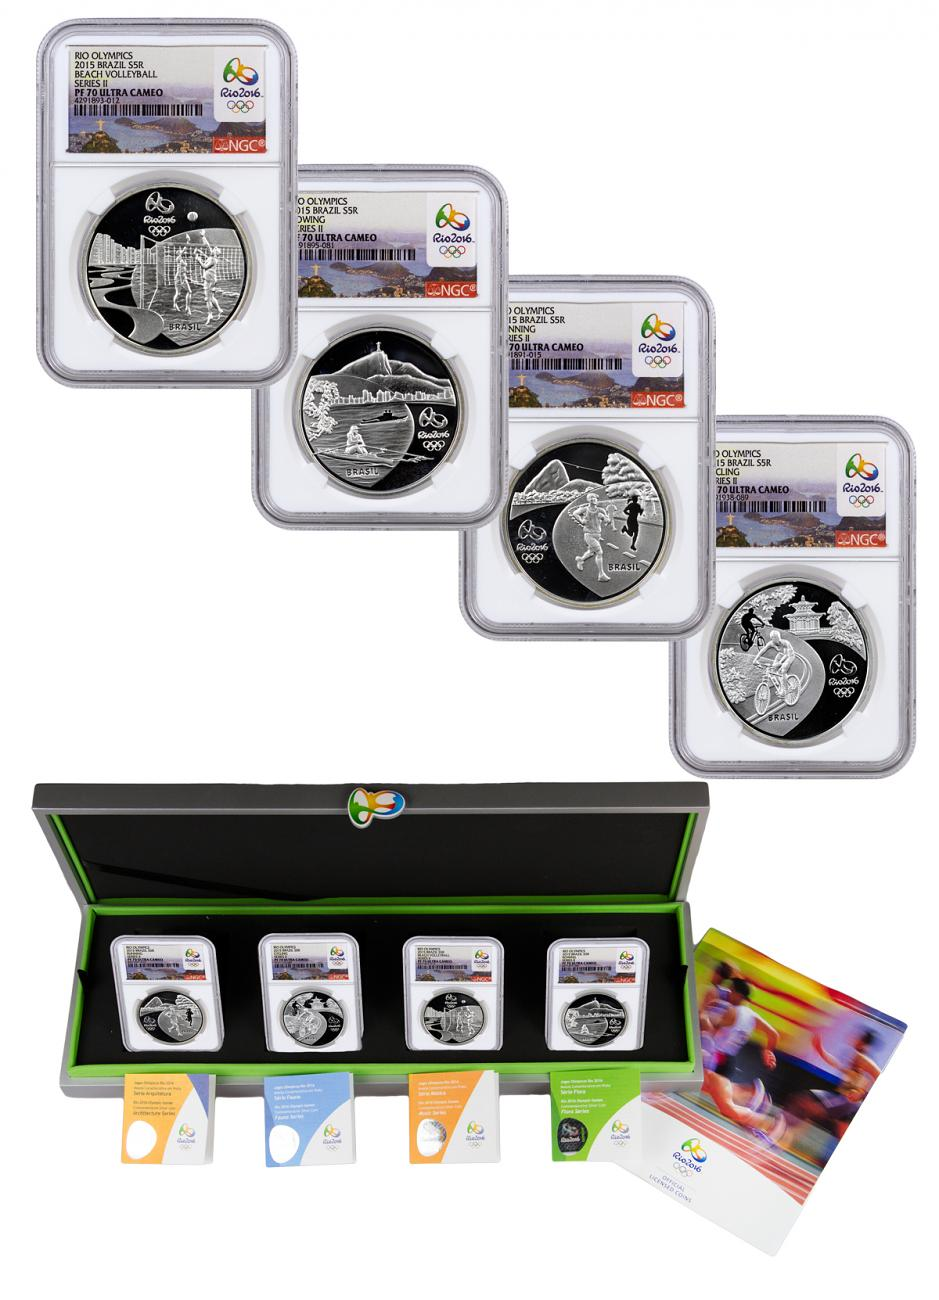 2015 Brazil 5 Reais Silver Proof Rio 2016 Olympics Series 2 - Set of 4 Coins - NGC PF70 UC (Rio 2016 Label)